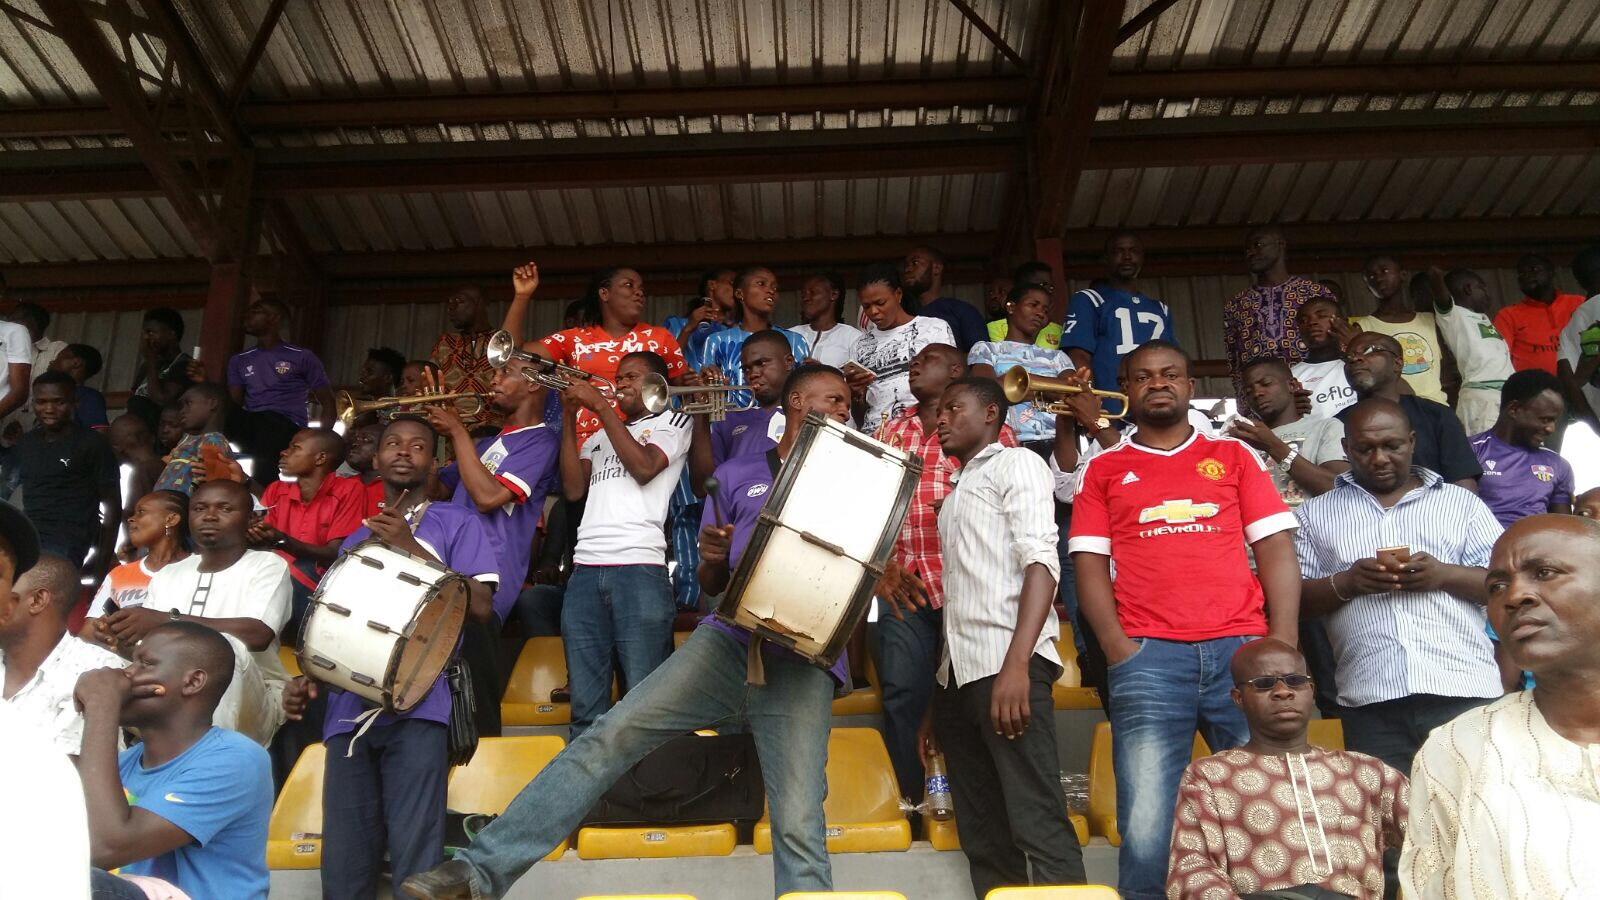 A brass band, comprised of football fans, plays in the stands at Agege Stadium.  Photo by David Goldblatt.